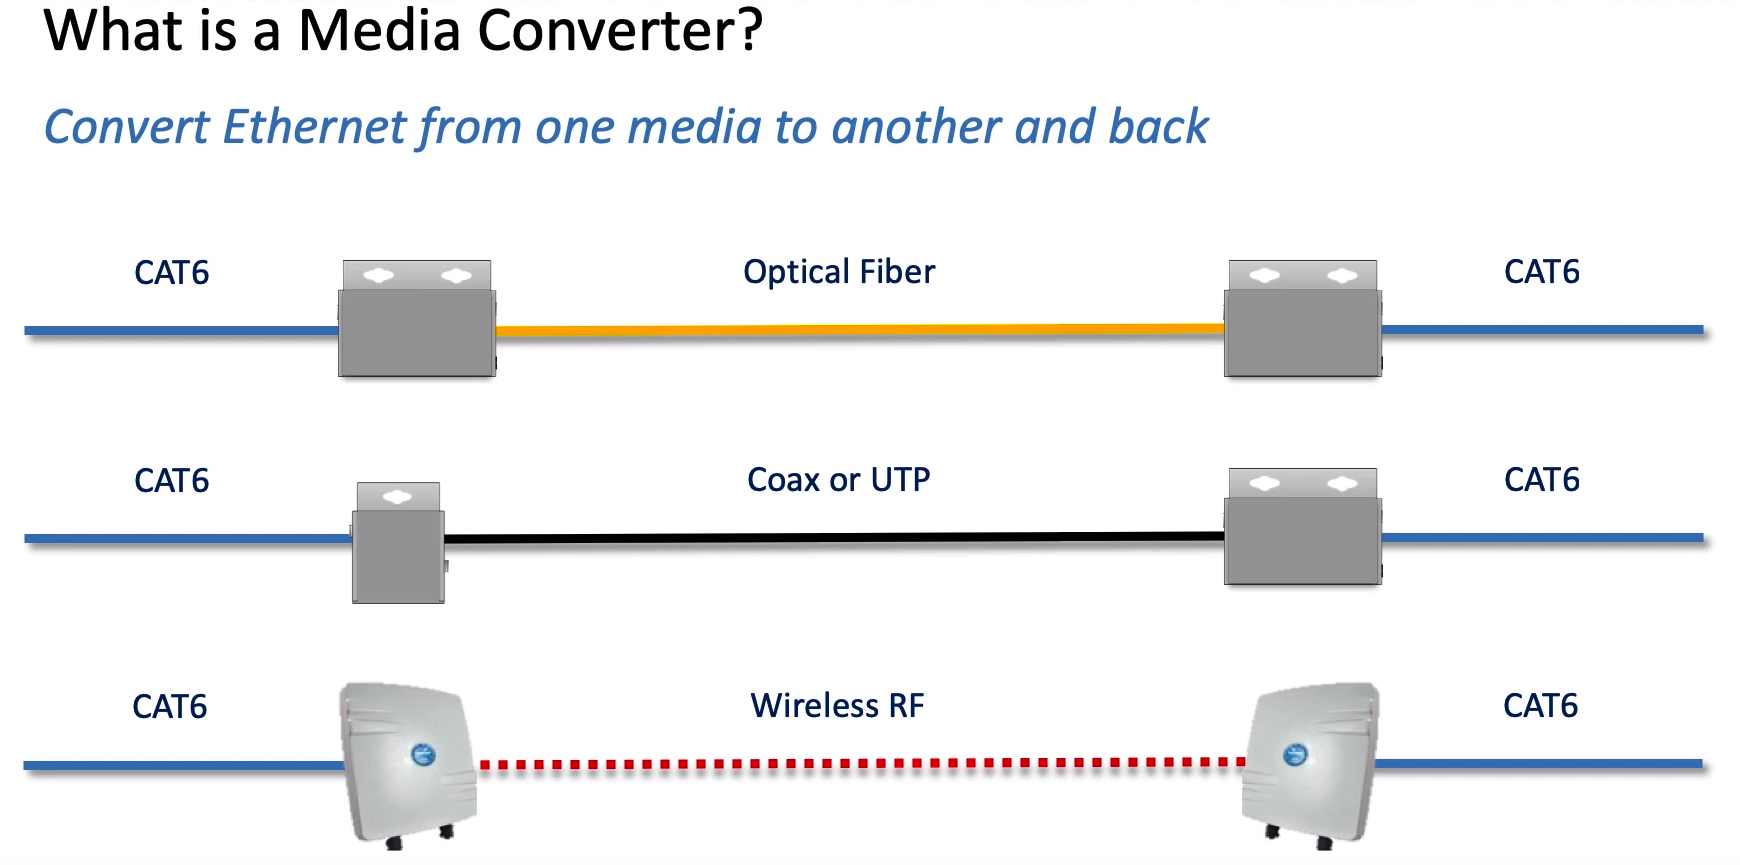 Media Converters: What are they and when are they used?